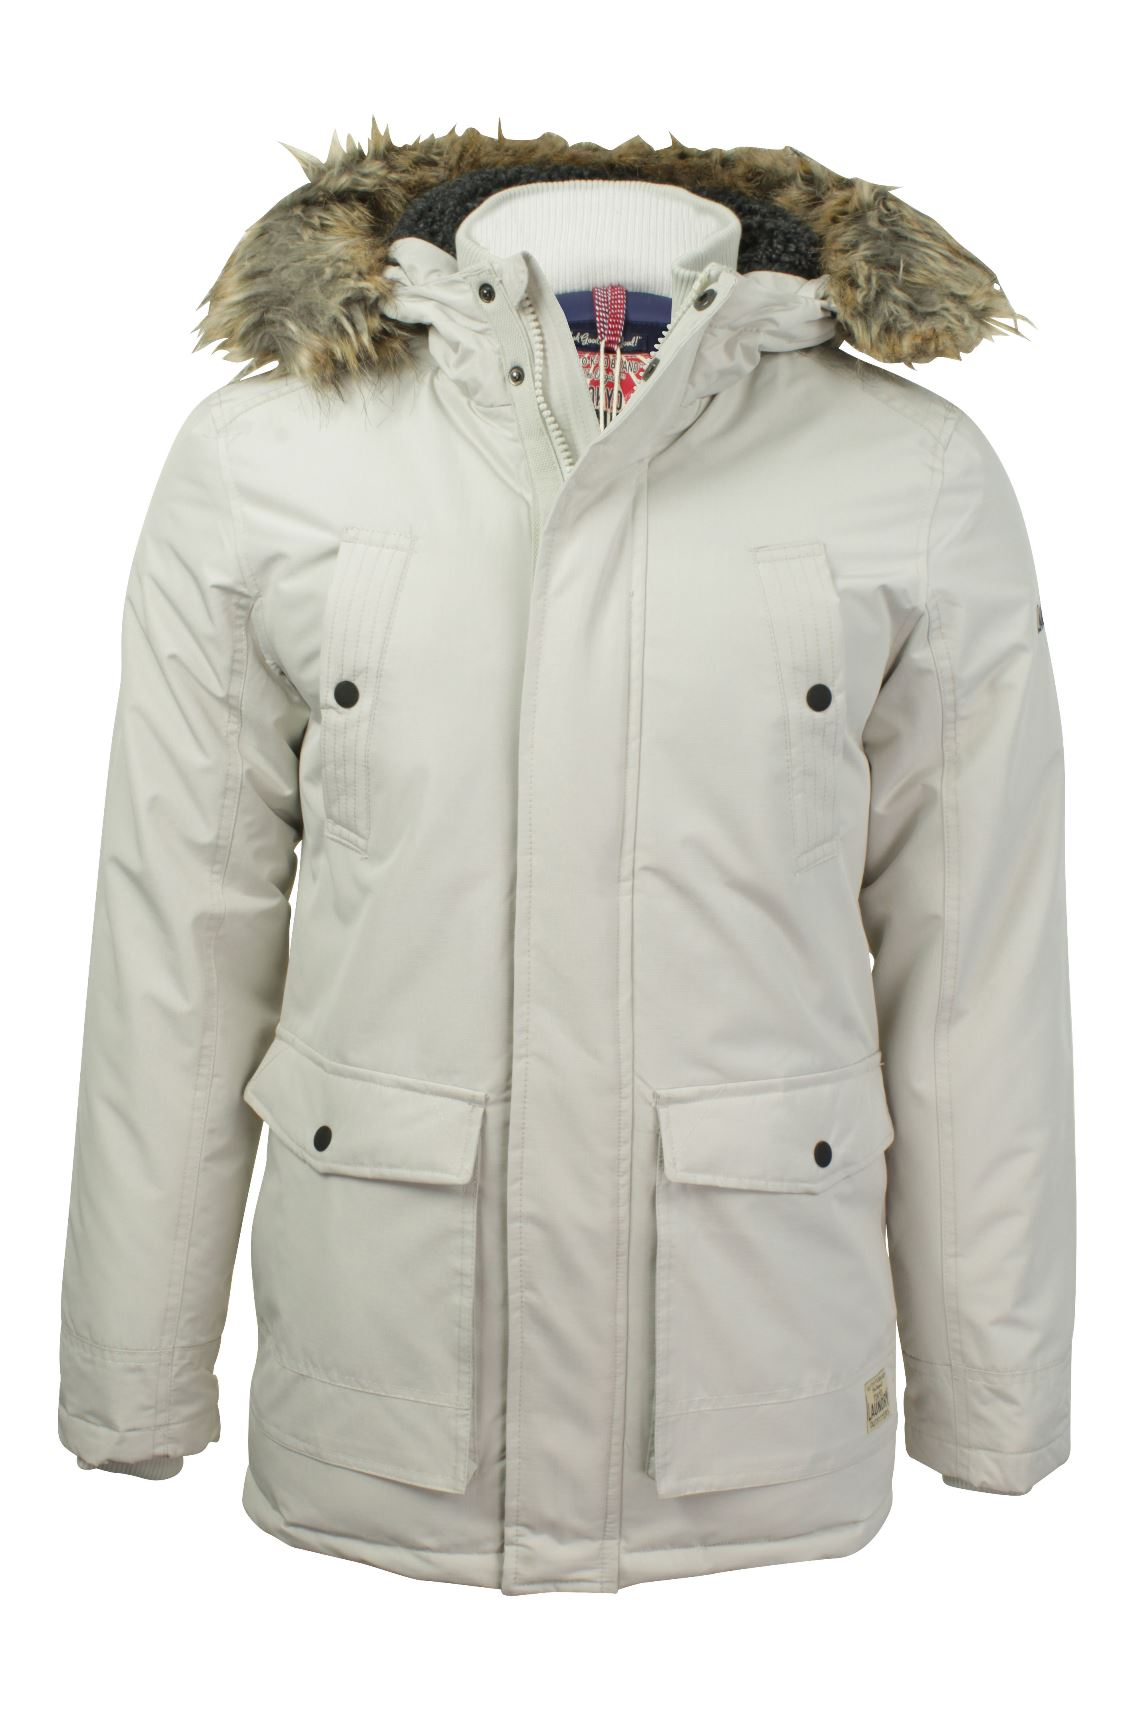 Mens RipStop Parka Jacket by Tokyo Laundry 'Ridgecrest'-Main Image